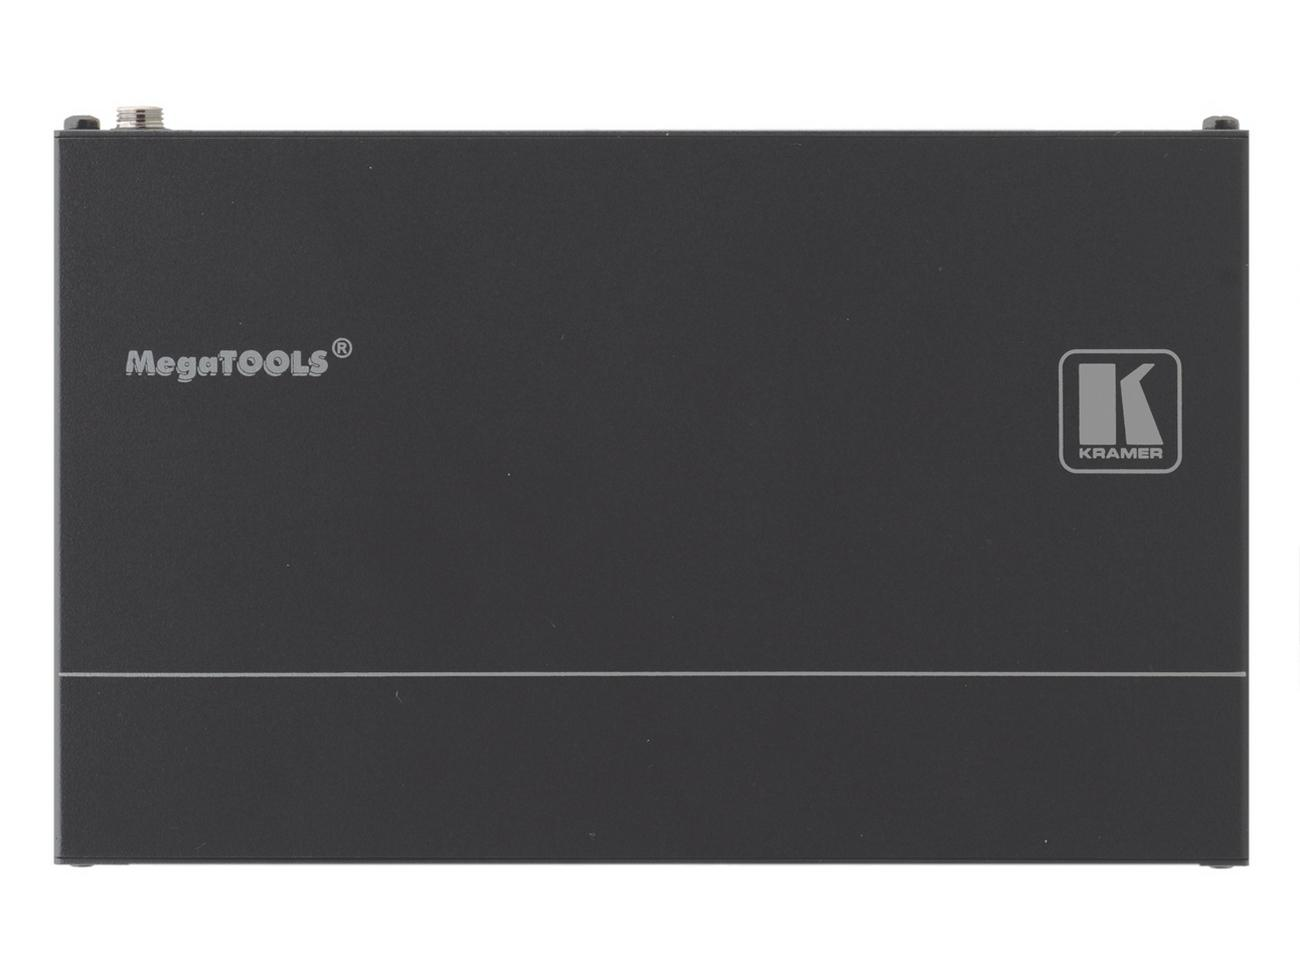 TP-590RXR HDMI/Audio/USB/Bidirect RS-232 over HDBaseT 2.0 Extender (Receiver) by Kramer